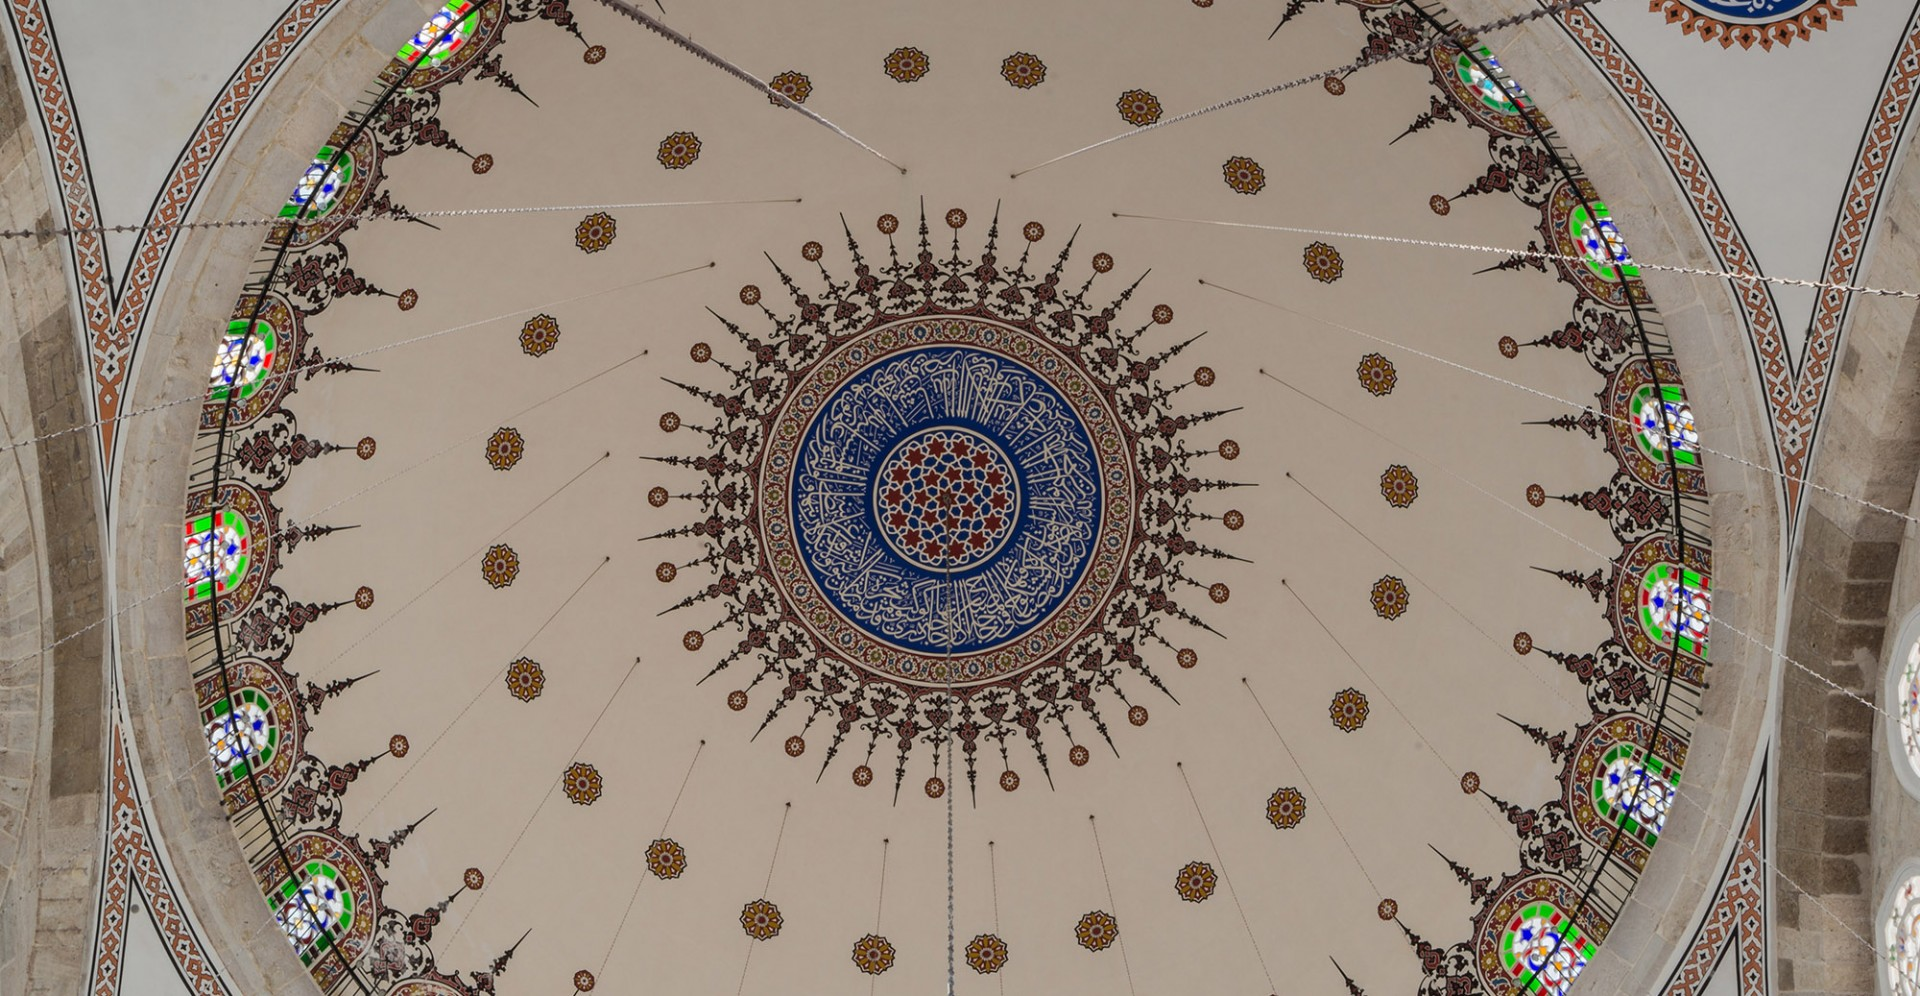 Dome of Mihrimah Sultan Camii